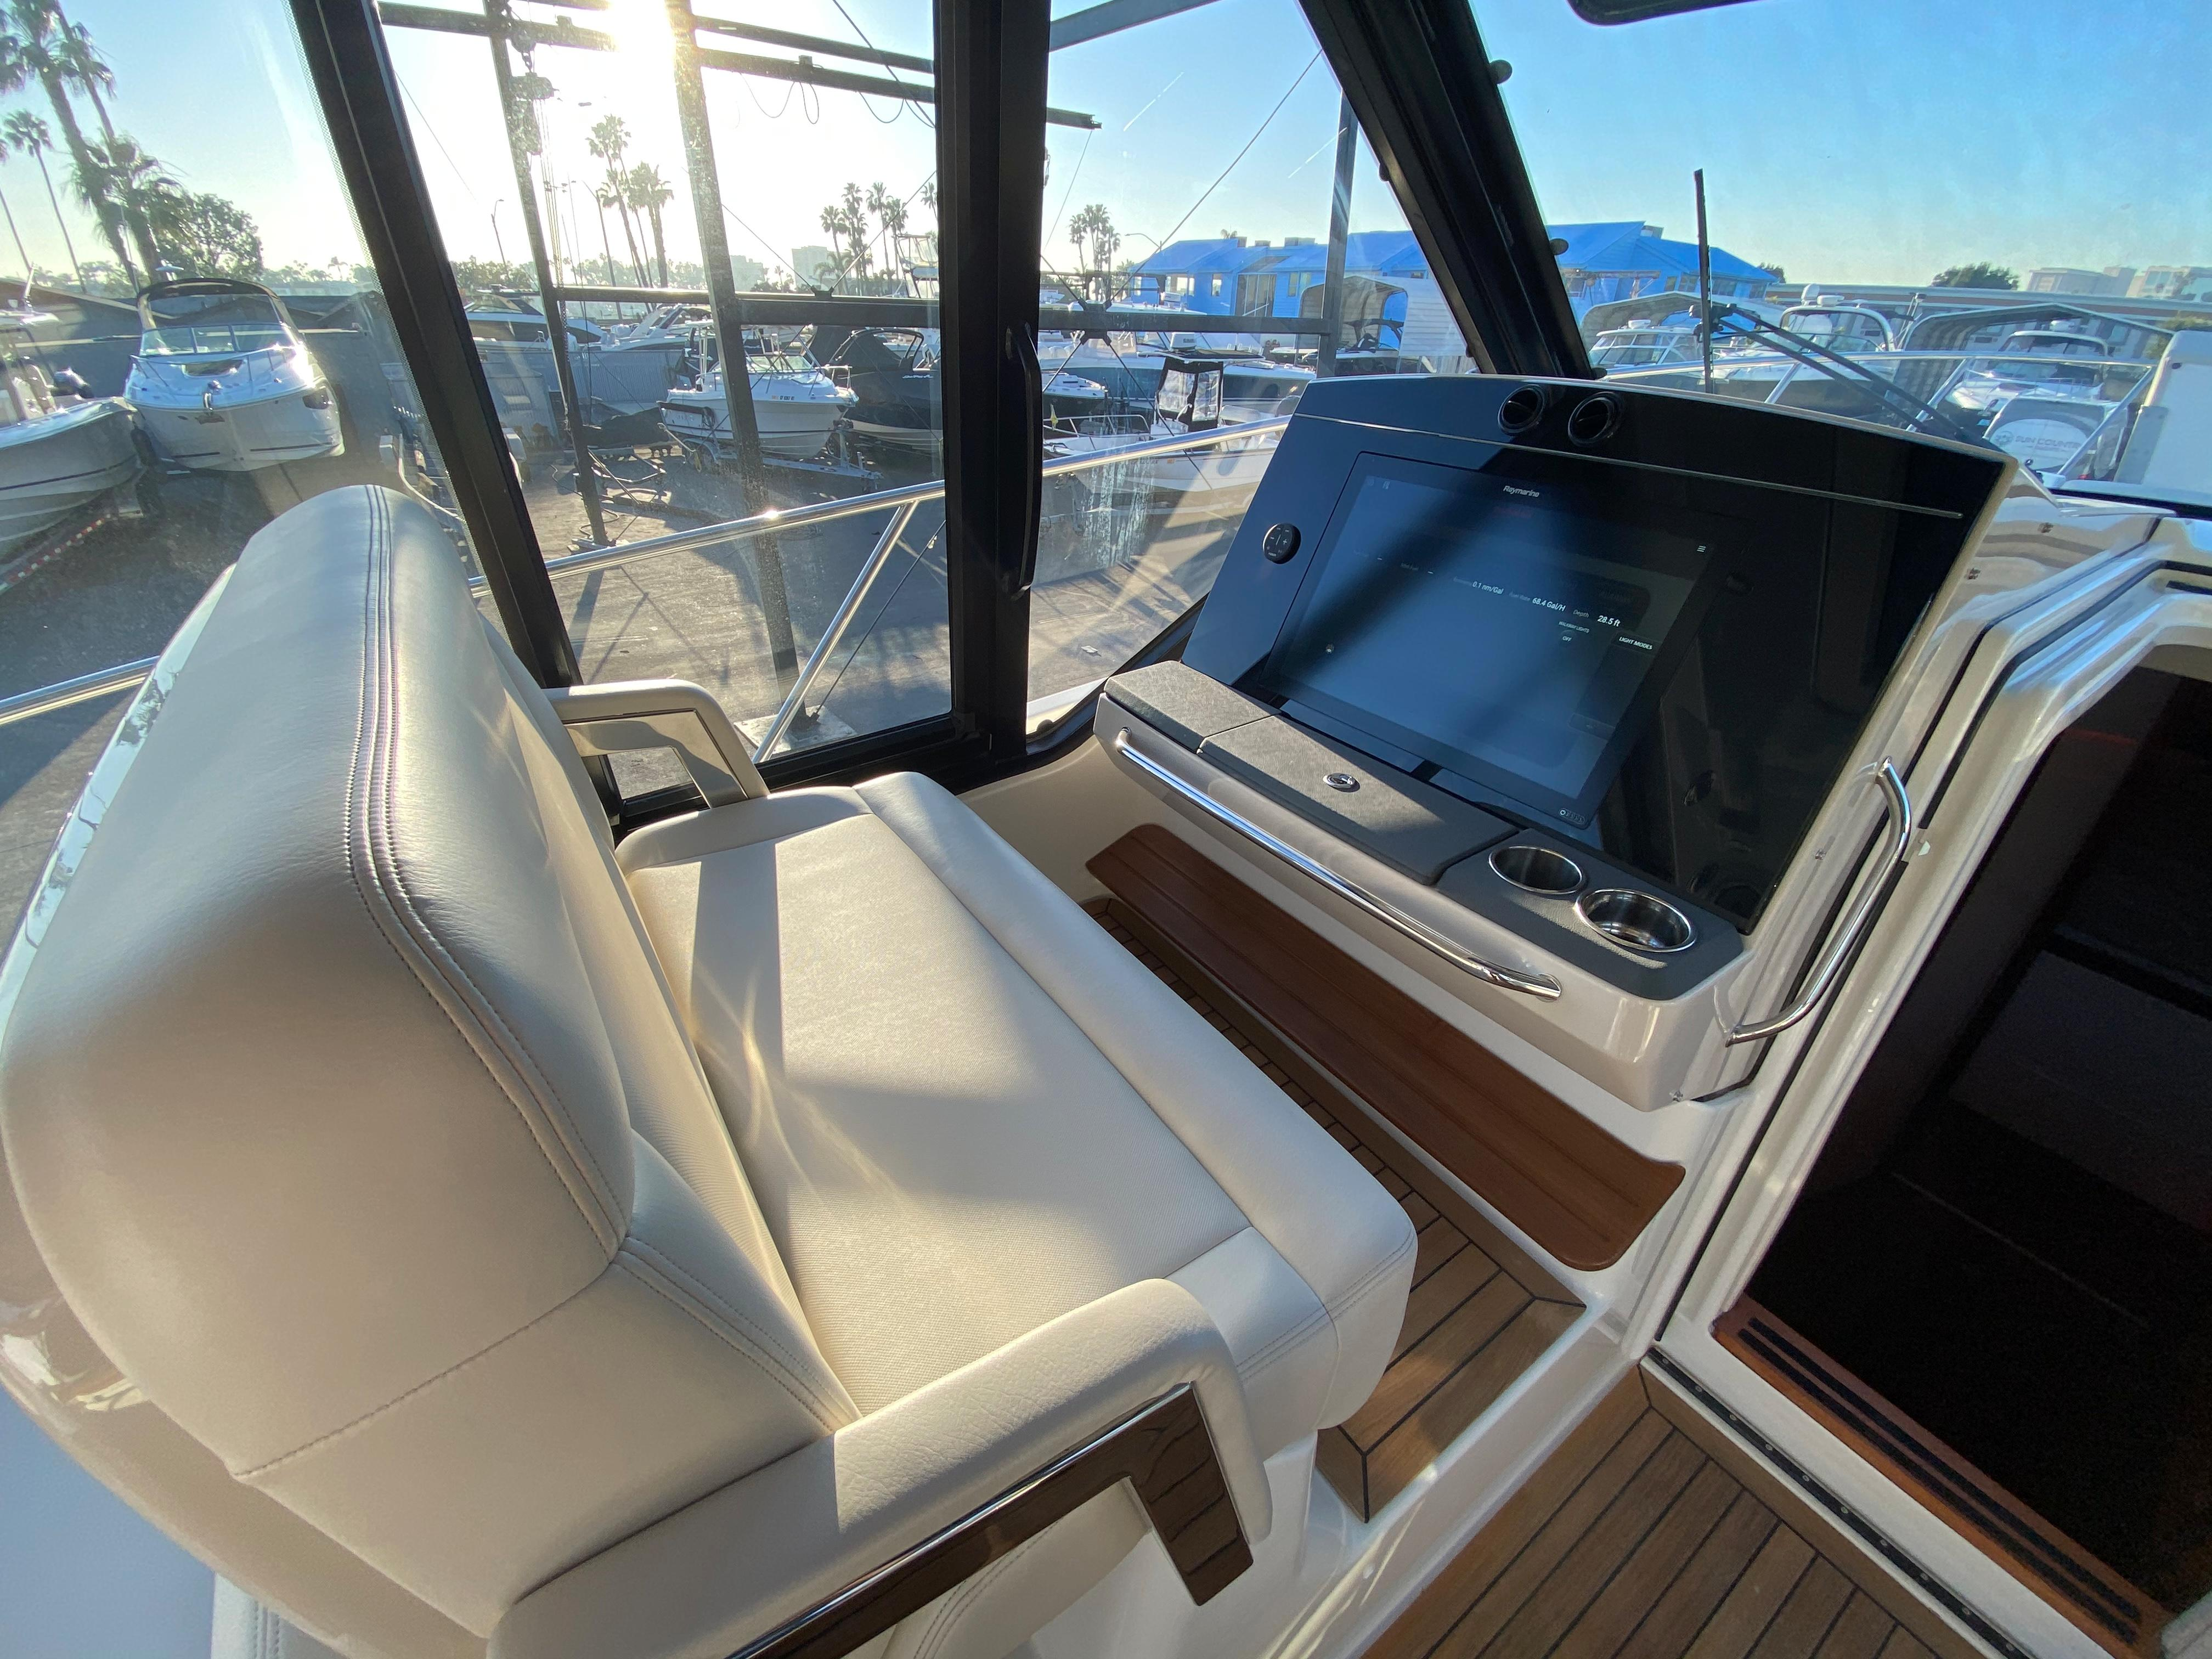 2021 Boston Whaler 405 Conquest #BW0010F inventory image at Sun Country Coastal in Newport Beach